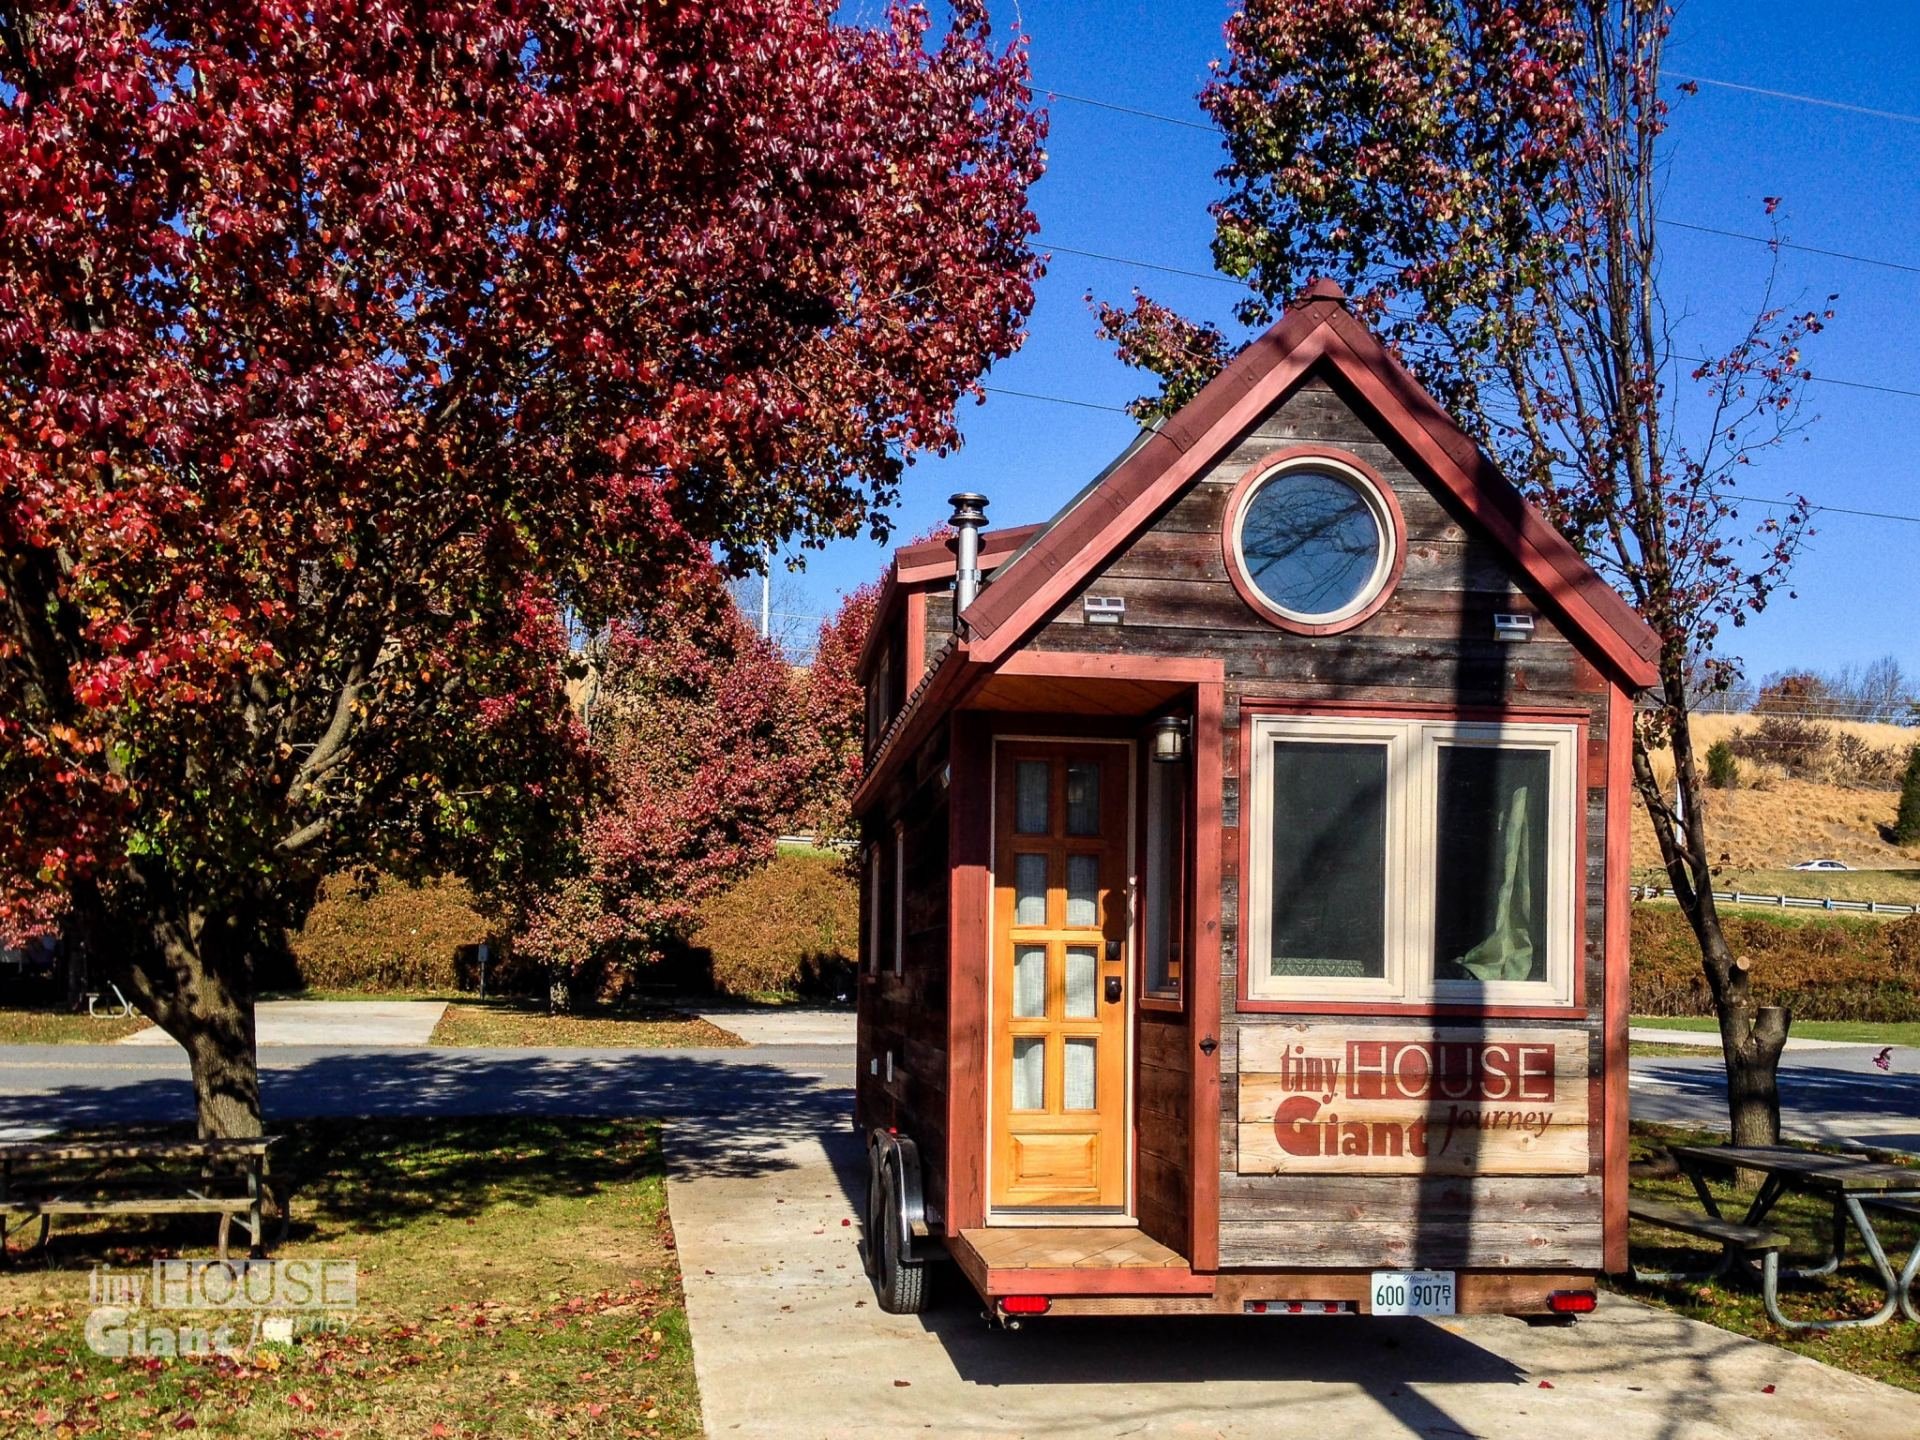 Tiny House Camping A List of campsites across the USA that